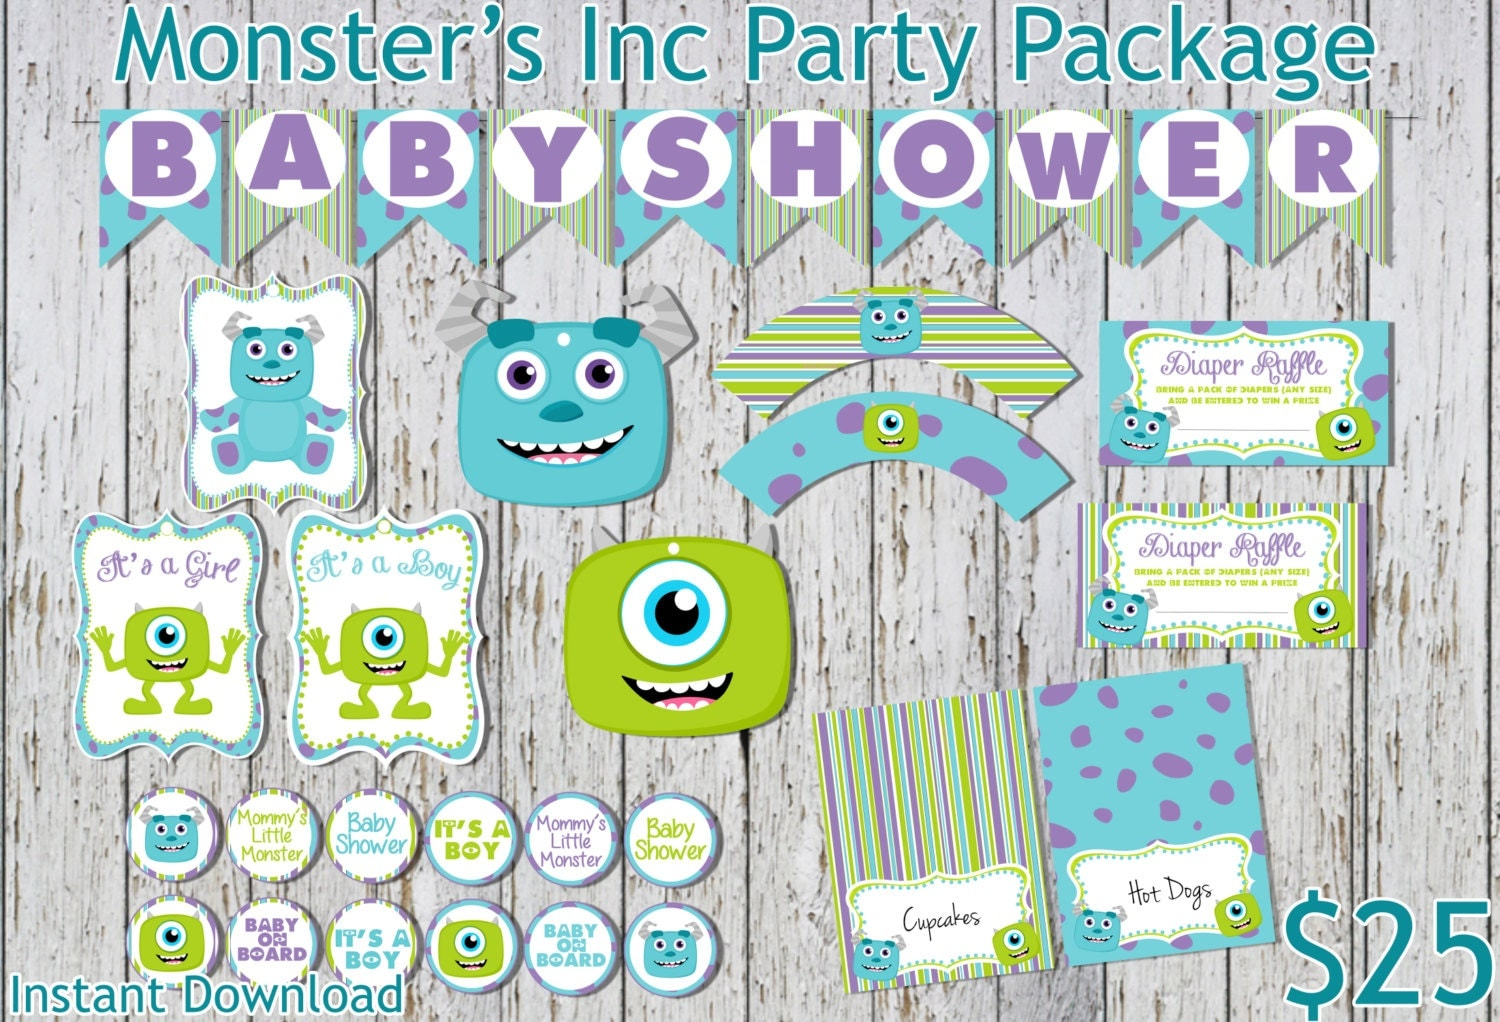 Monster Inc Baby Shower Decorations Monsters Inc Inspired Baby Shower Party Package